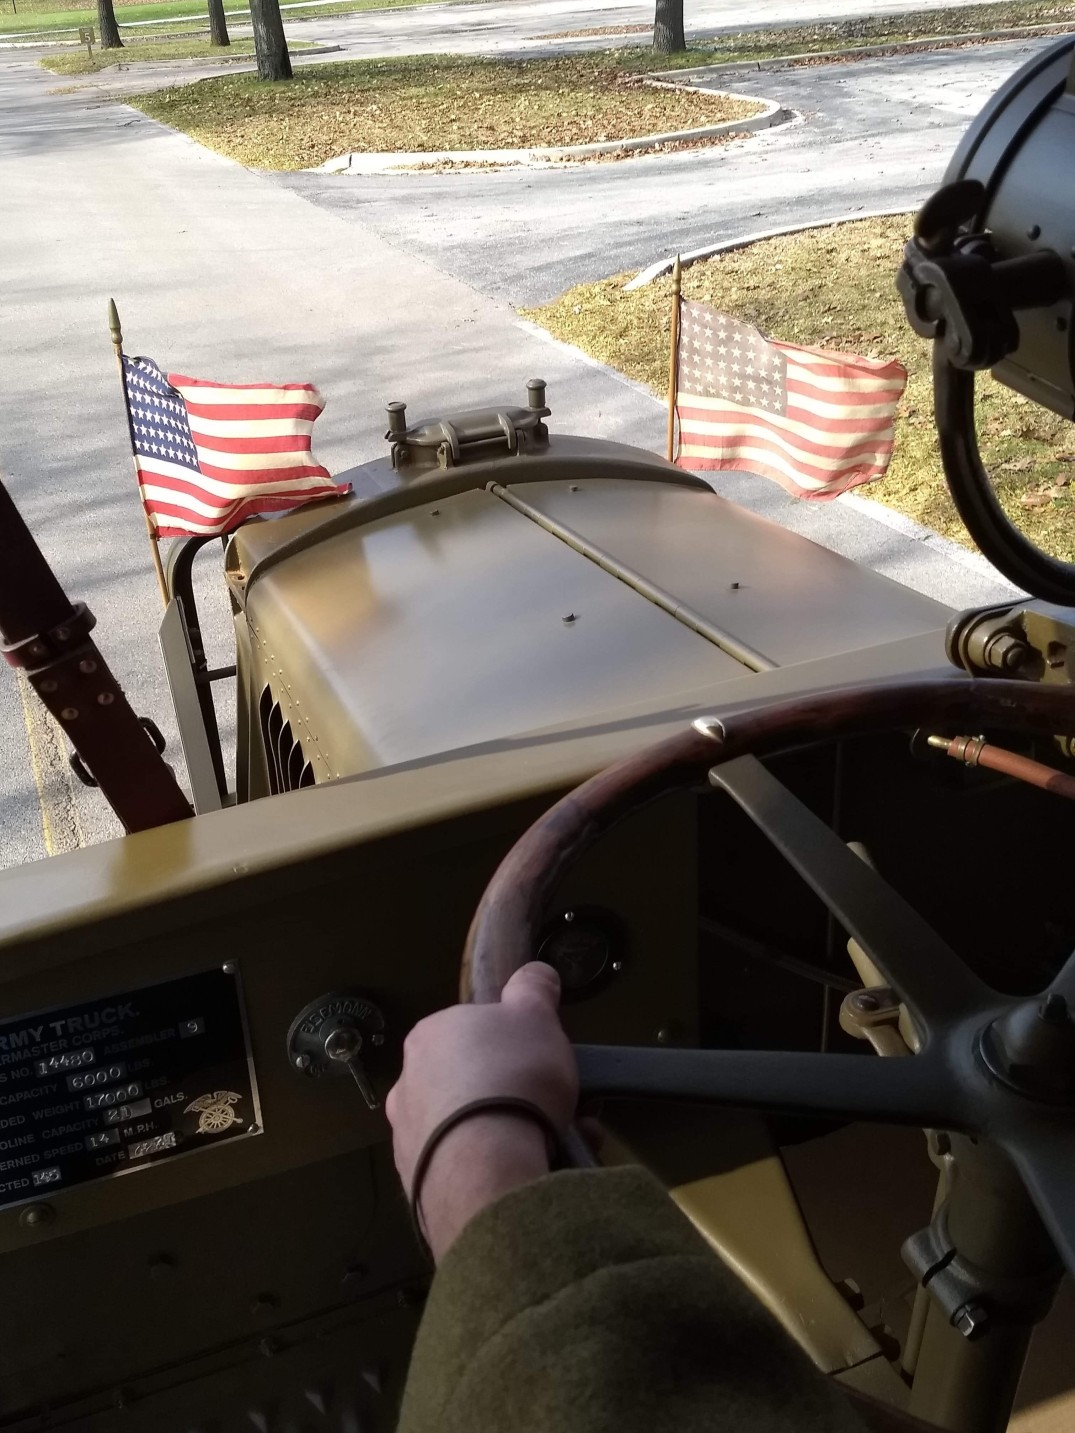 Driving the truck